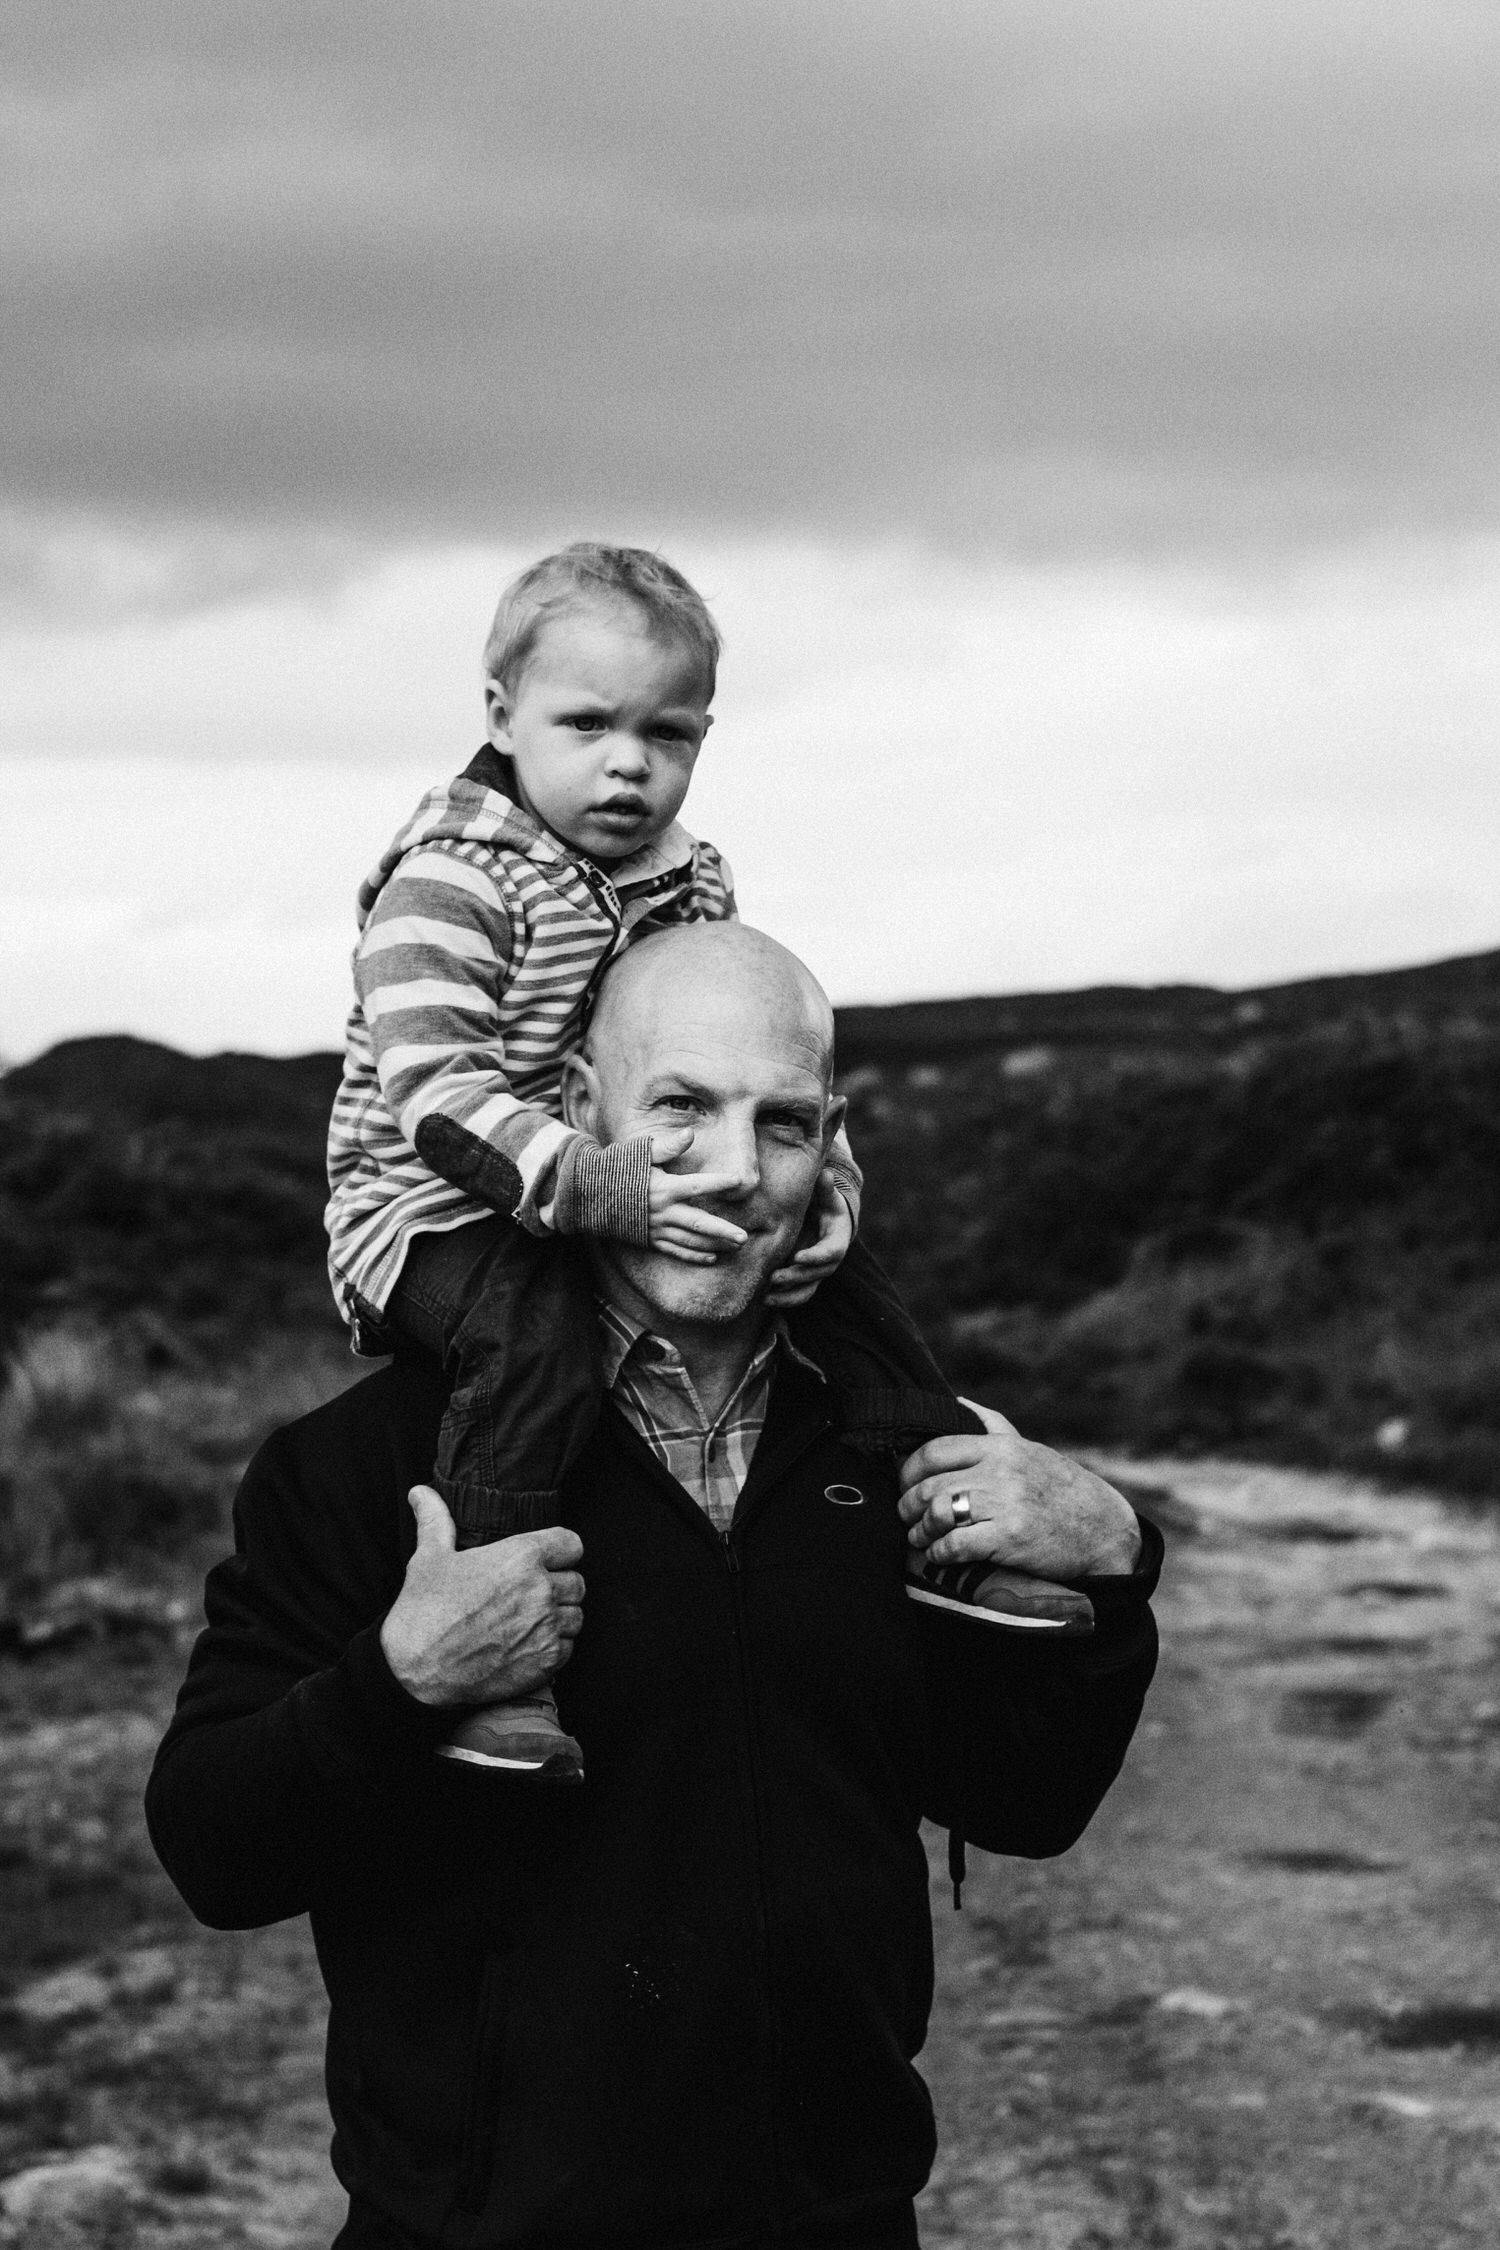 Father with his son on his shoulders, Glencoe